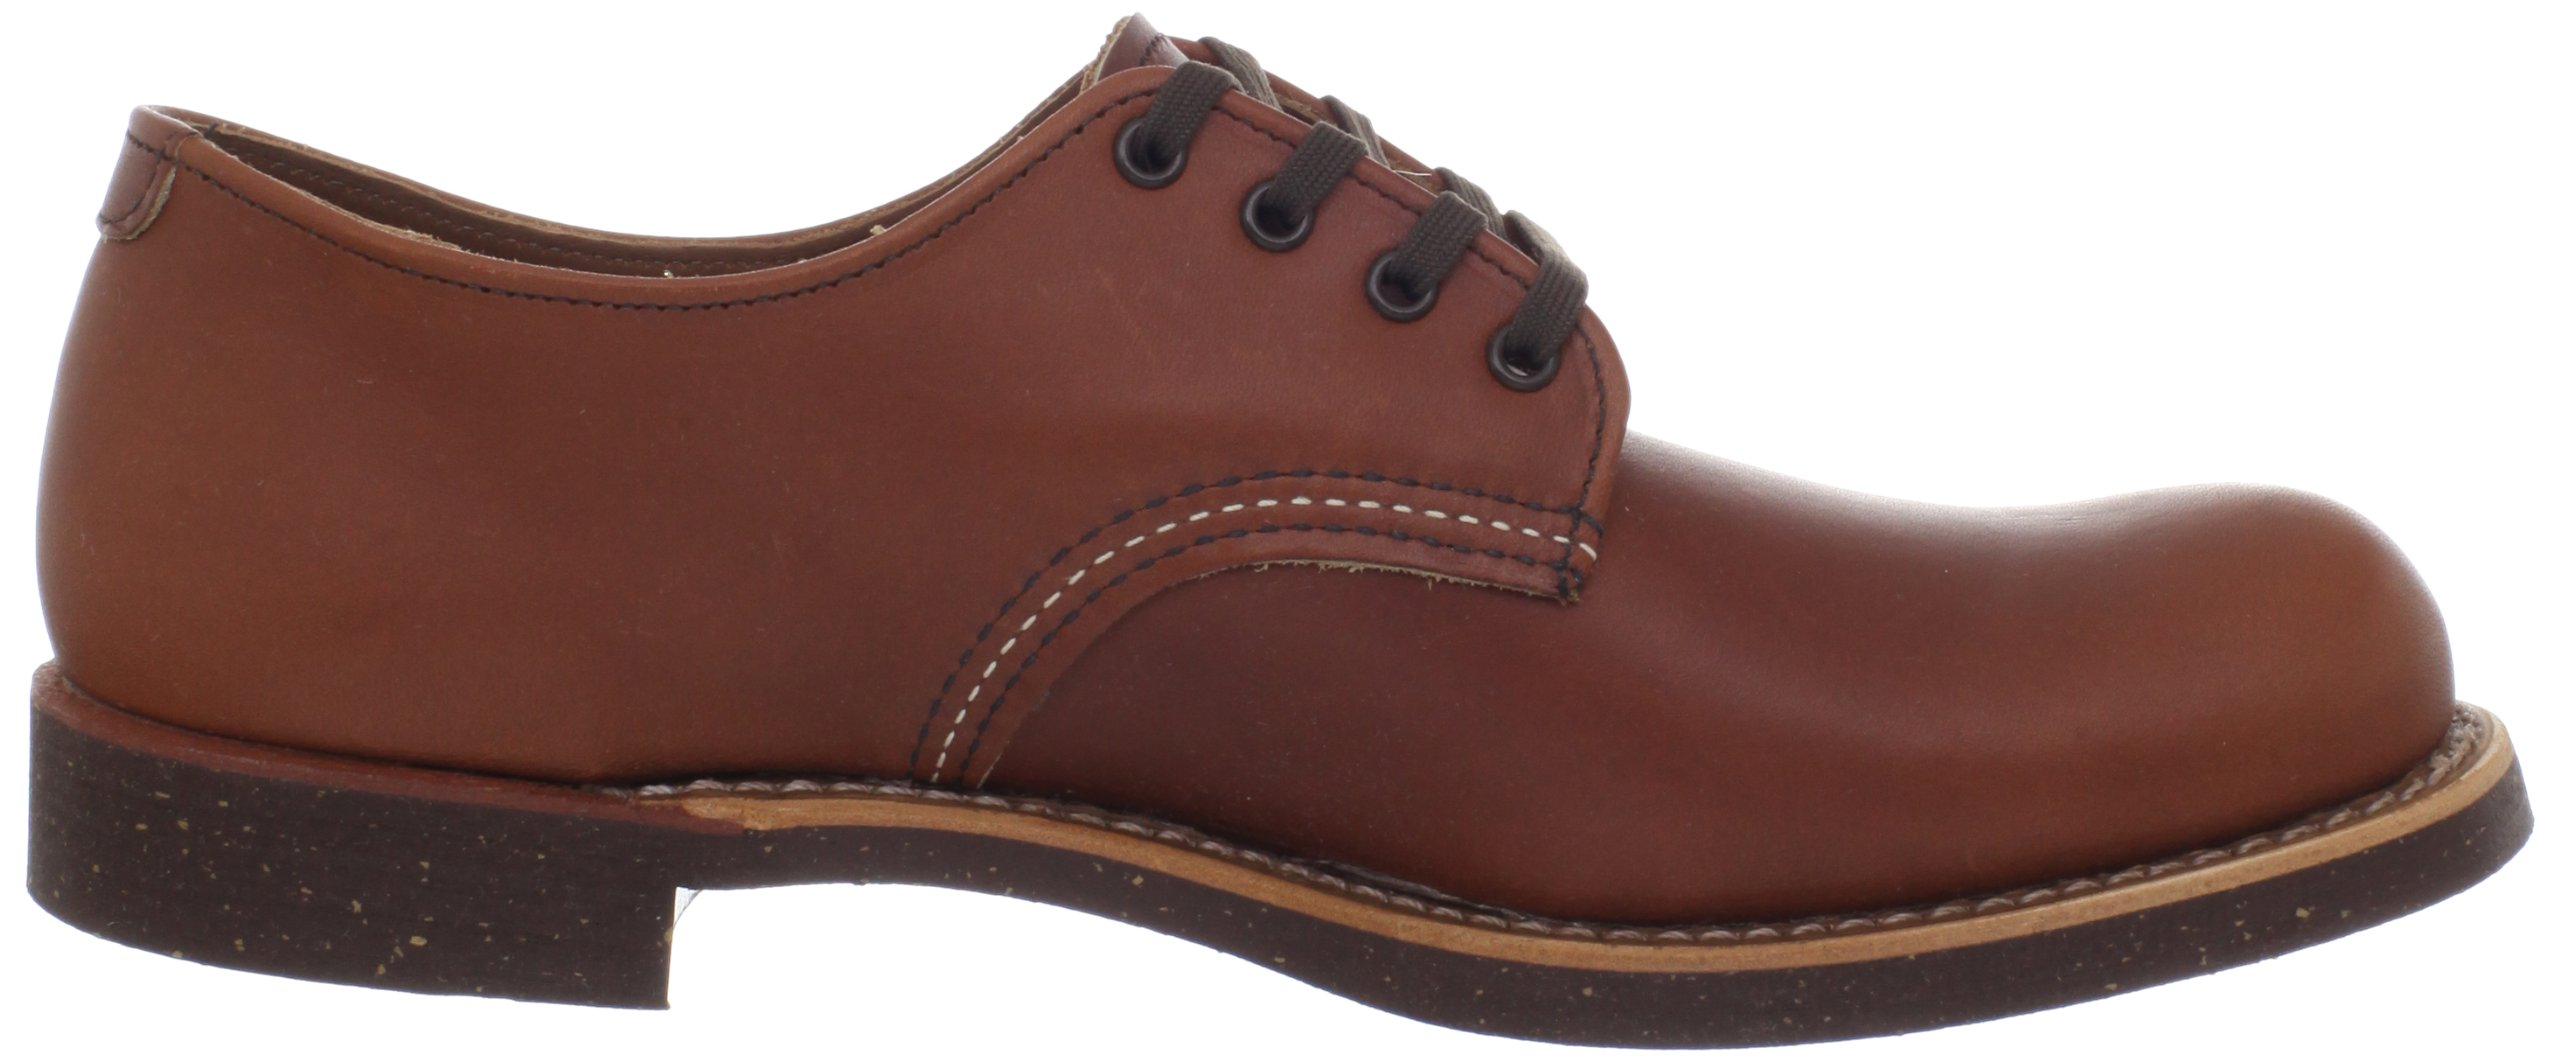 Red Wing Heritage Men's Work Oxford Shoe,Brick,10 D(M) US by Red Wing (Image #6)